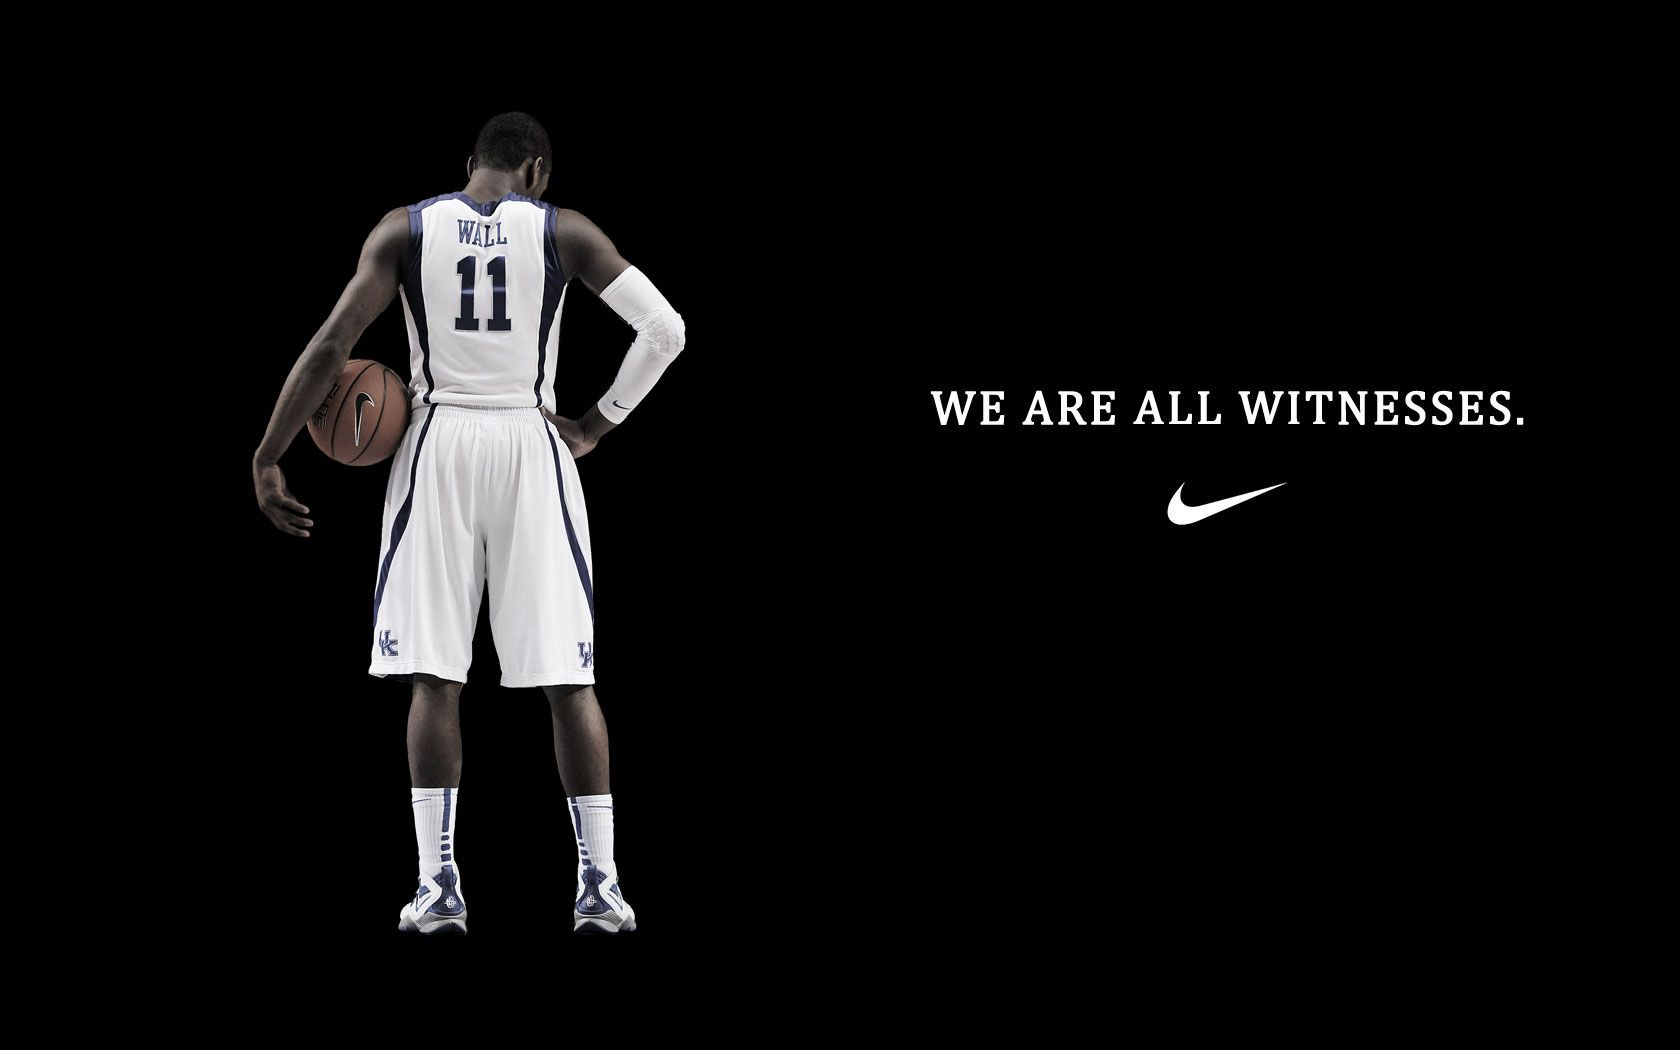 Wallpaper Nike Basketball